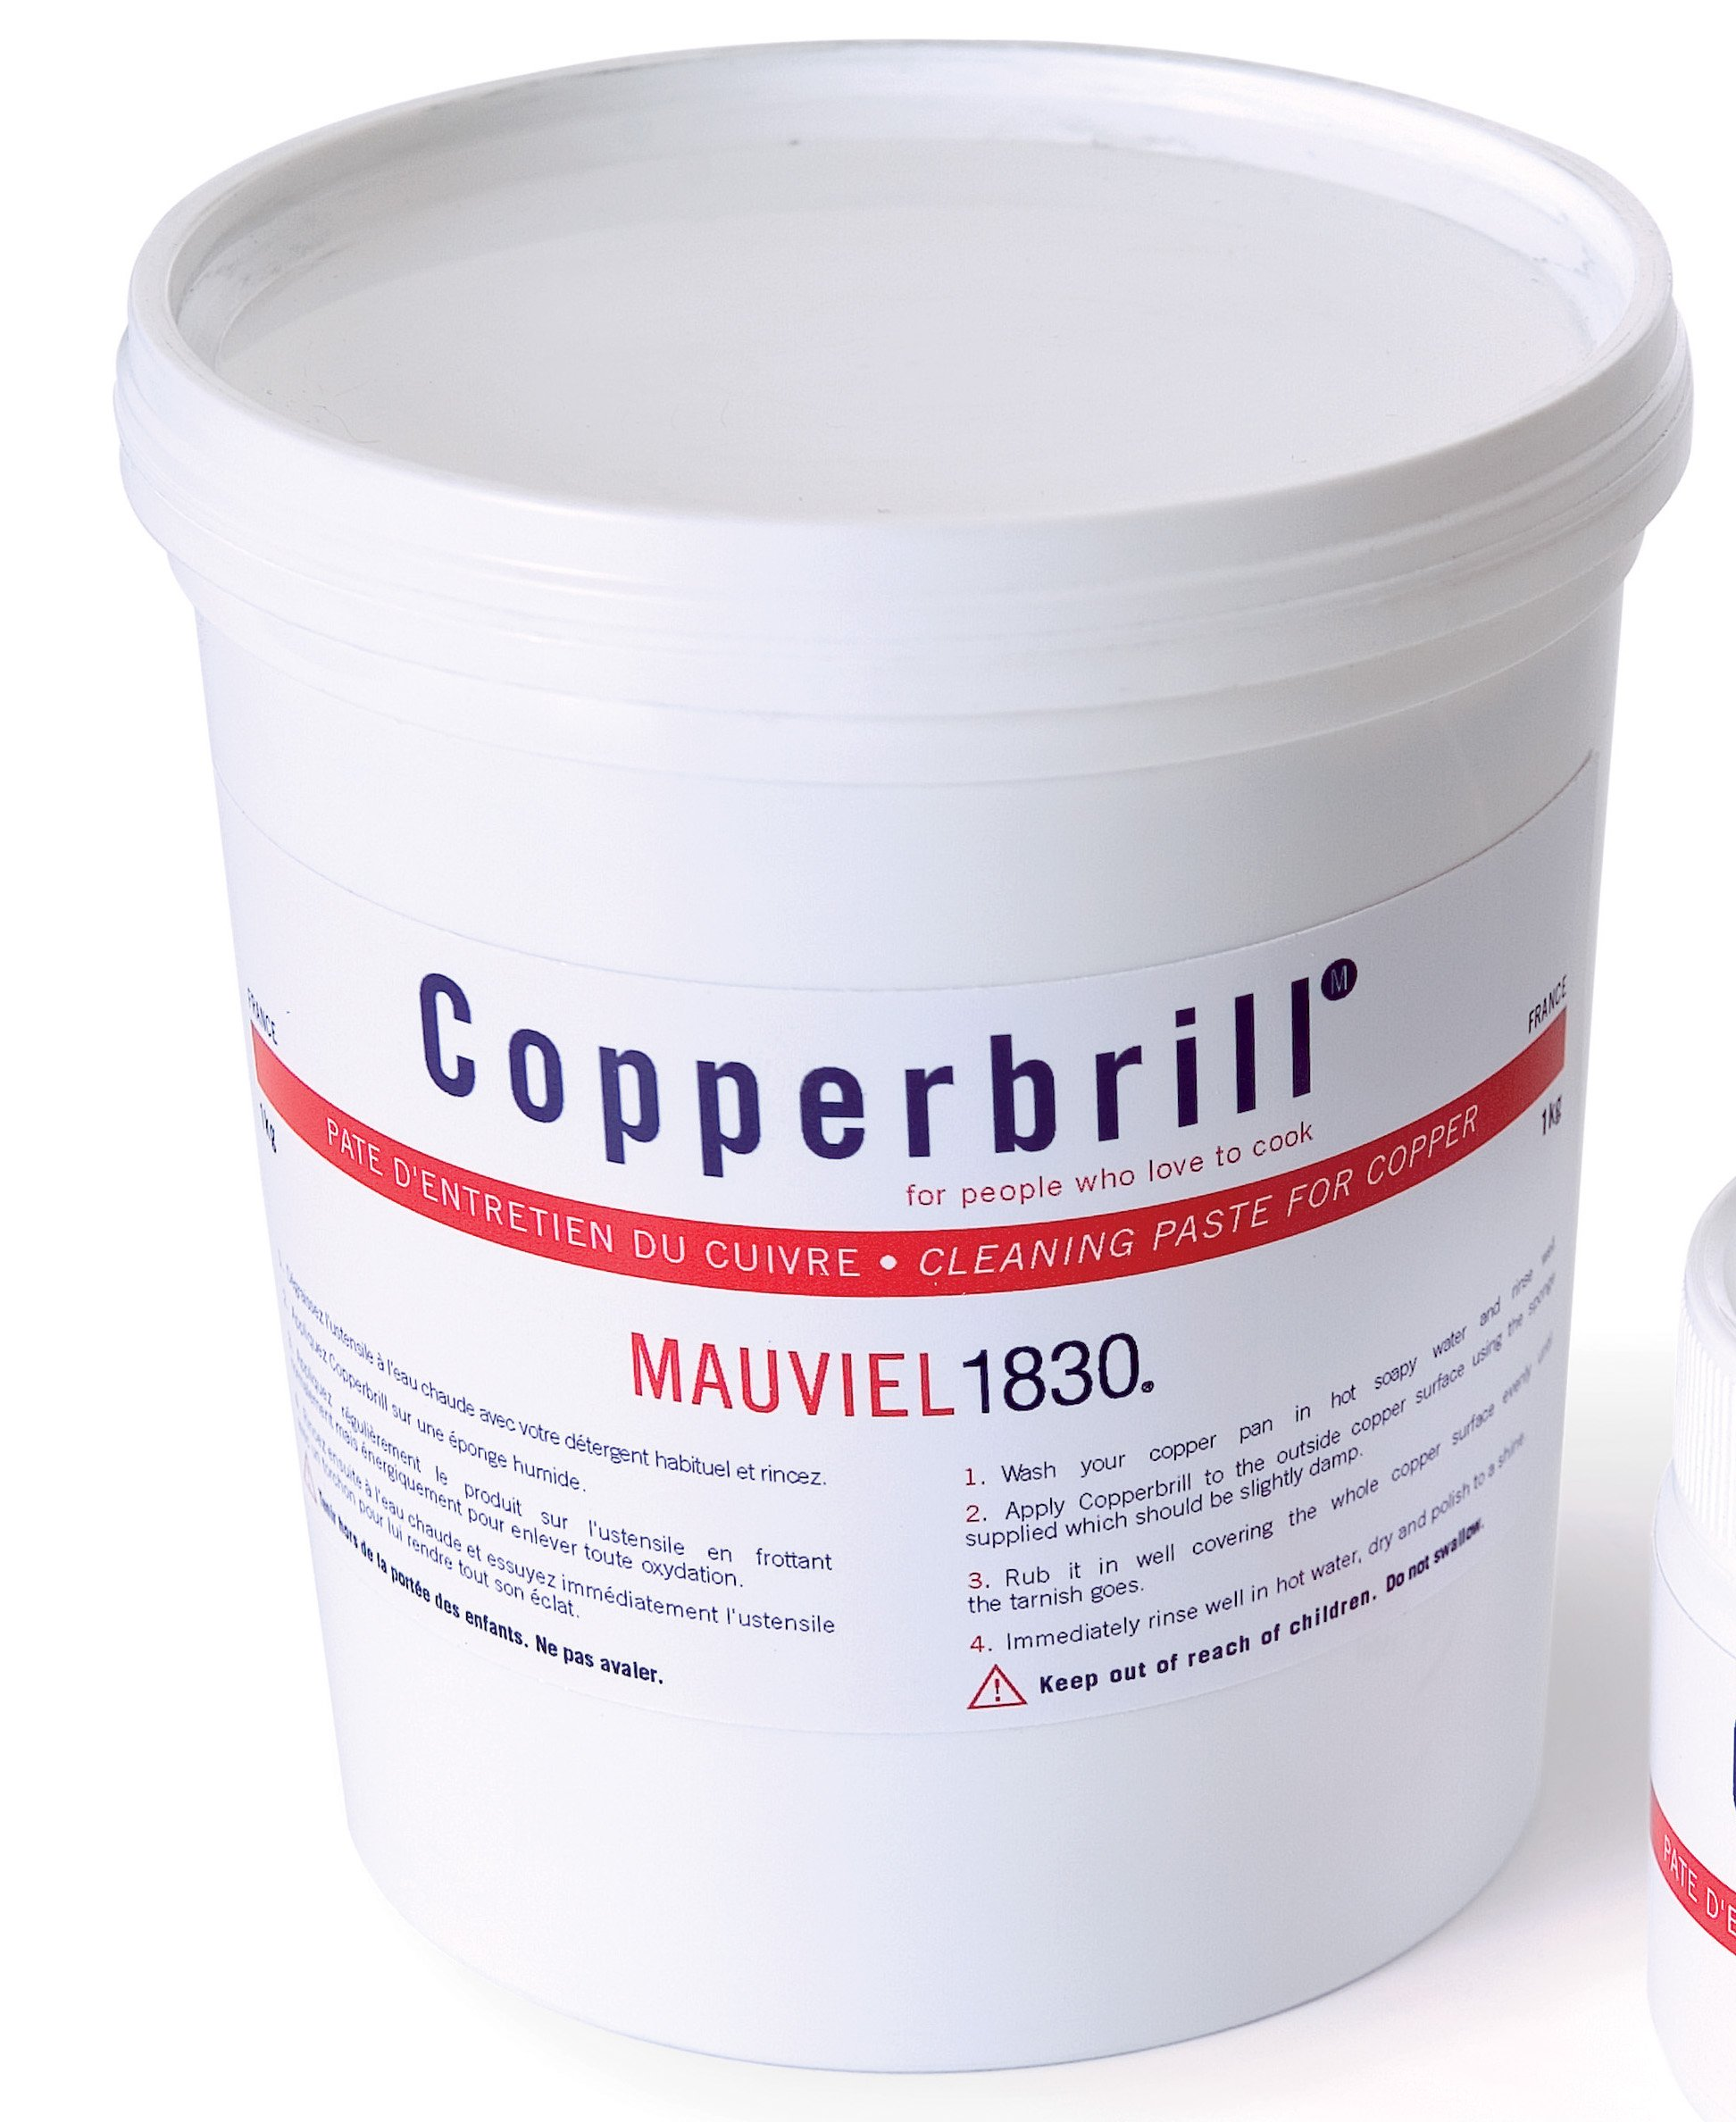 M'plus 1 liter Copperbrill Cleaner by Mauviel